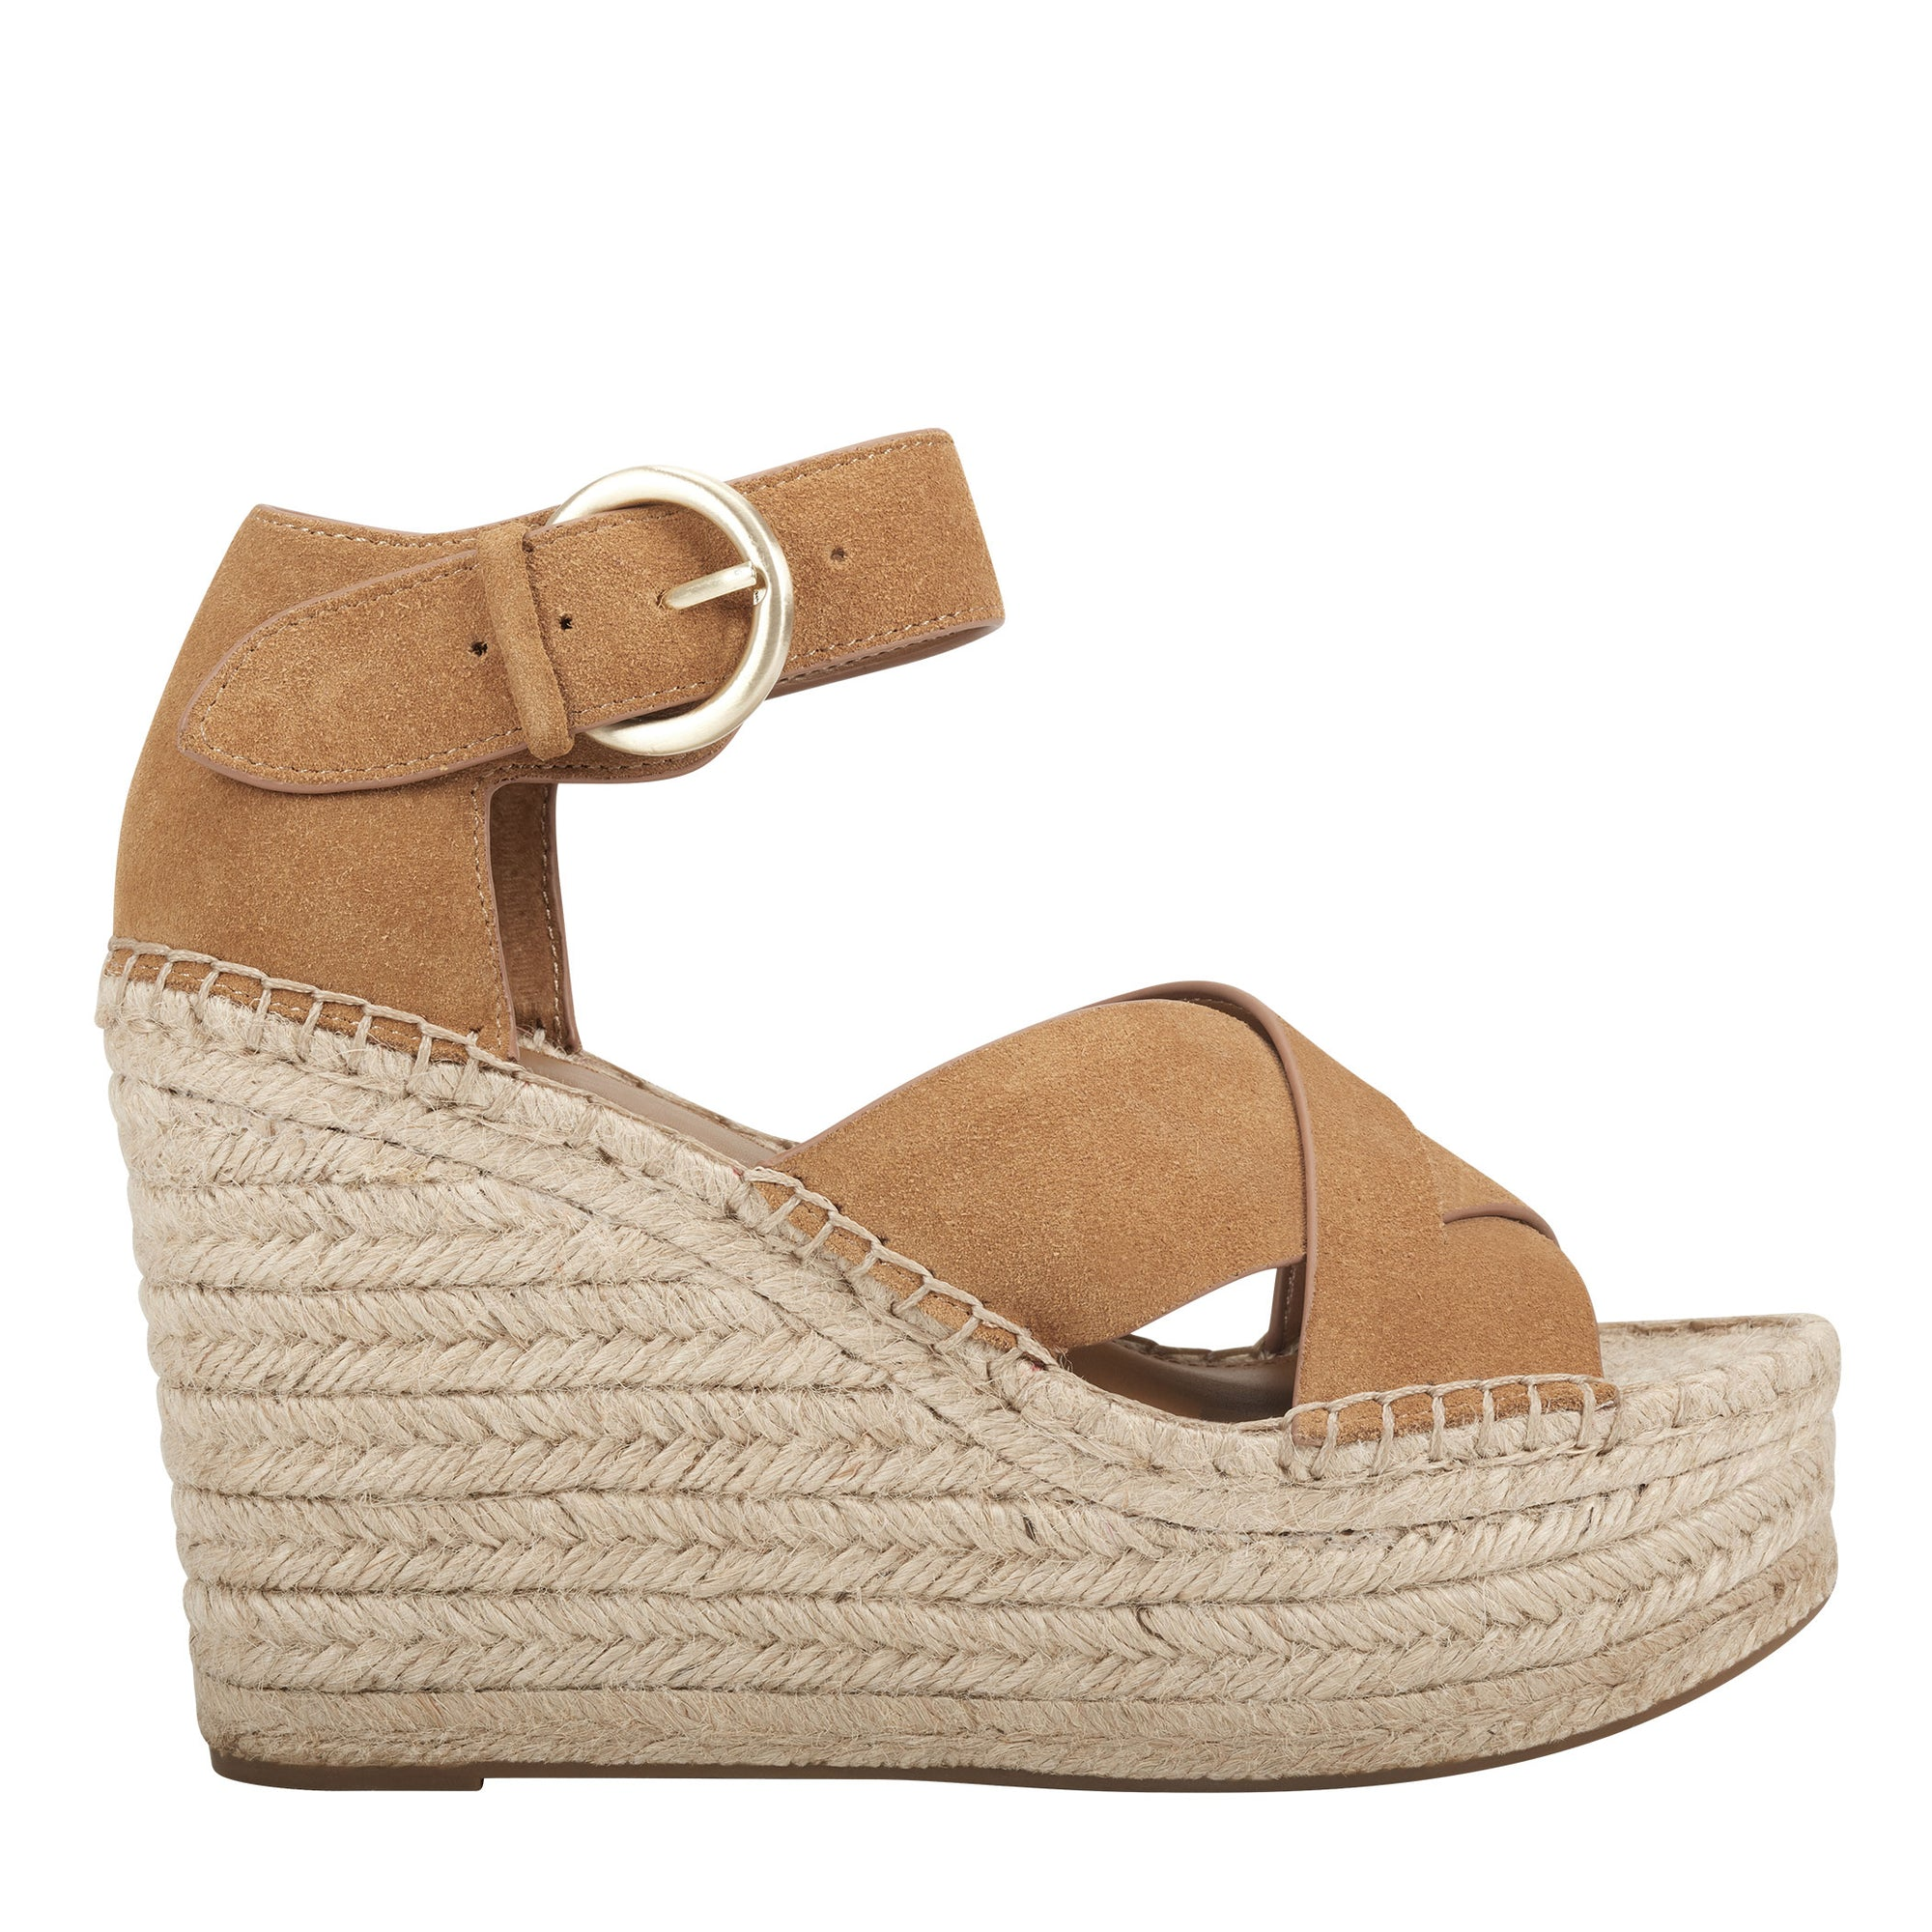 amari-espadrille-wedge-sandal-in-brown-suede